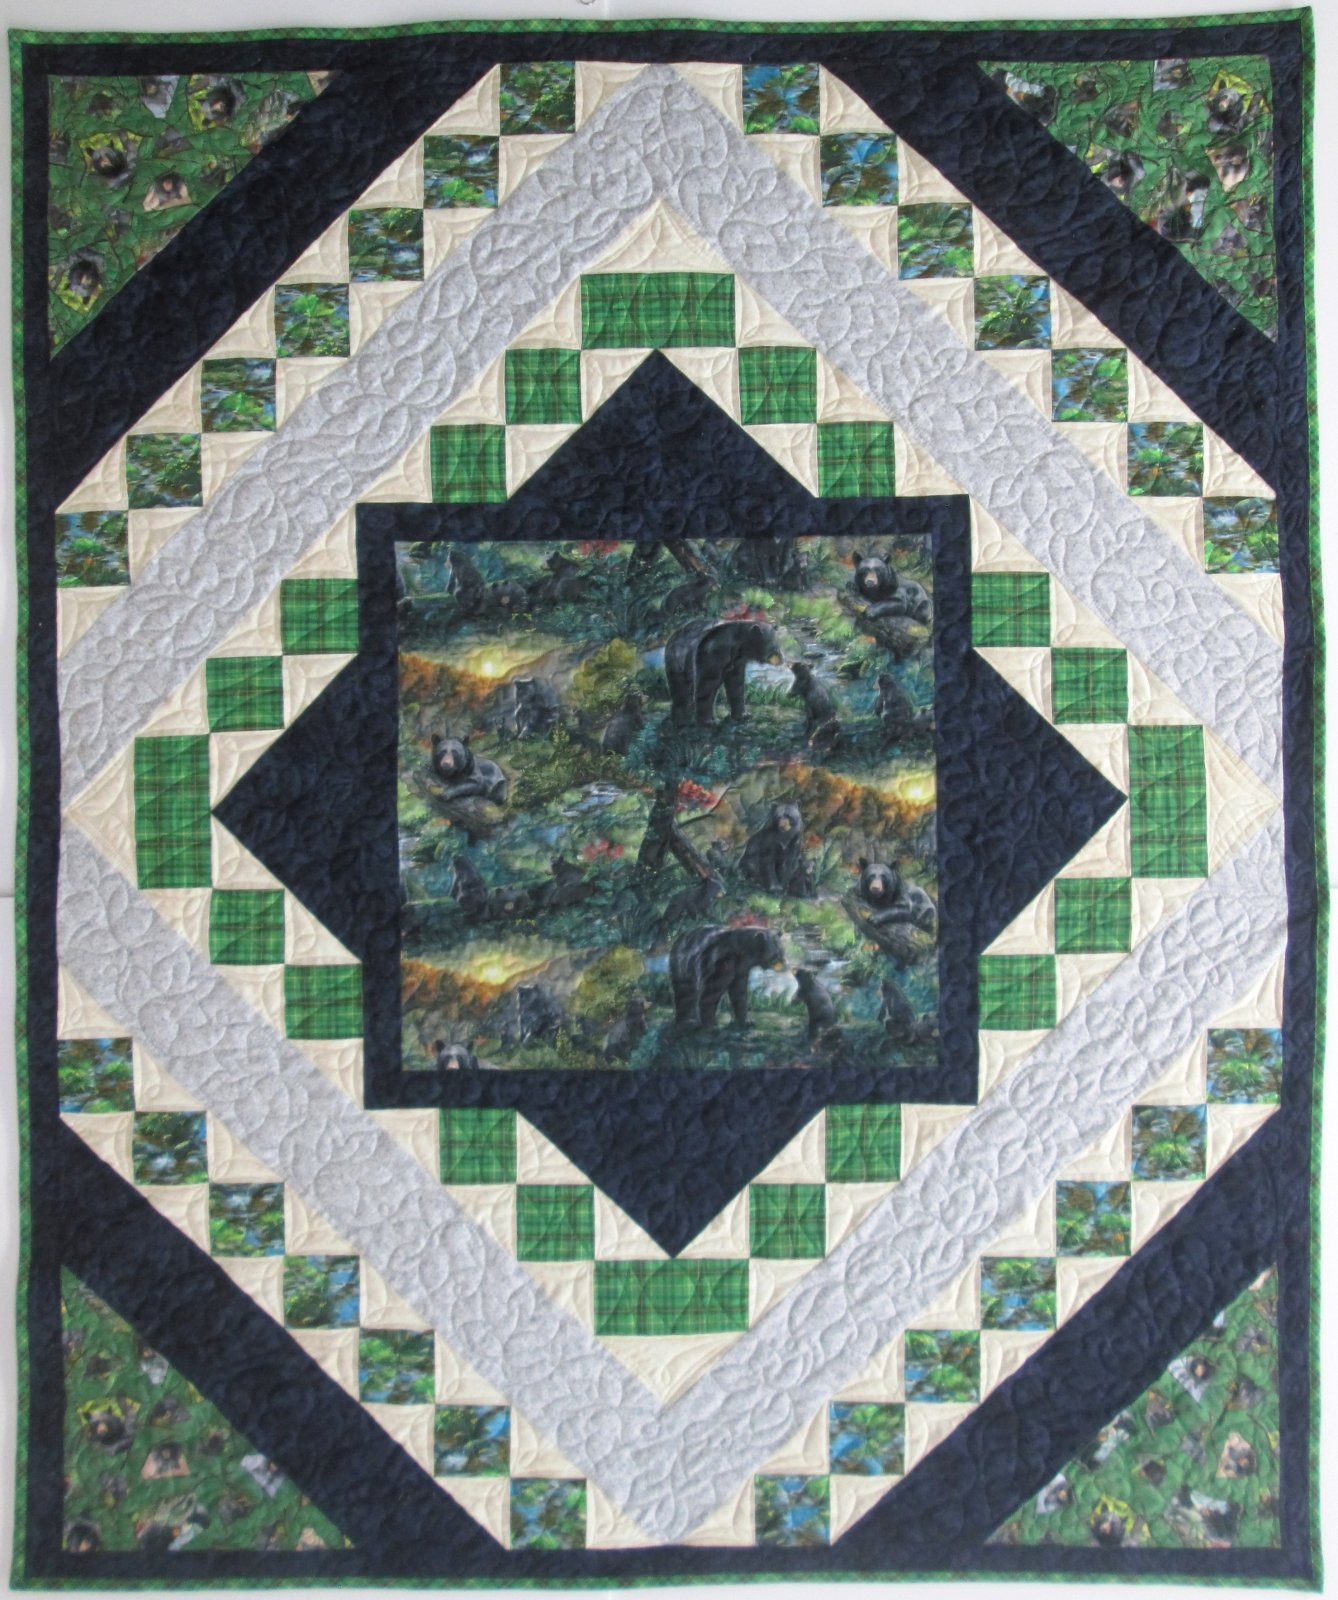 Nature's Bears Quilt Sample 51 by 63